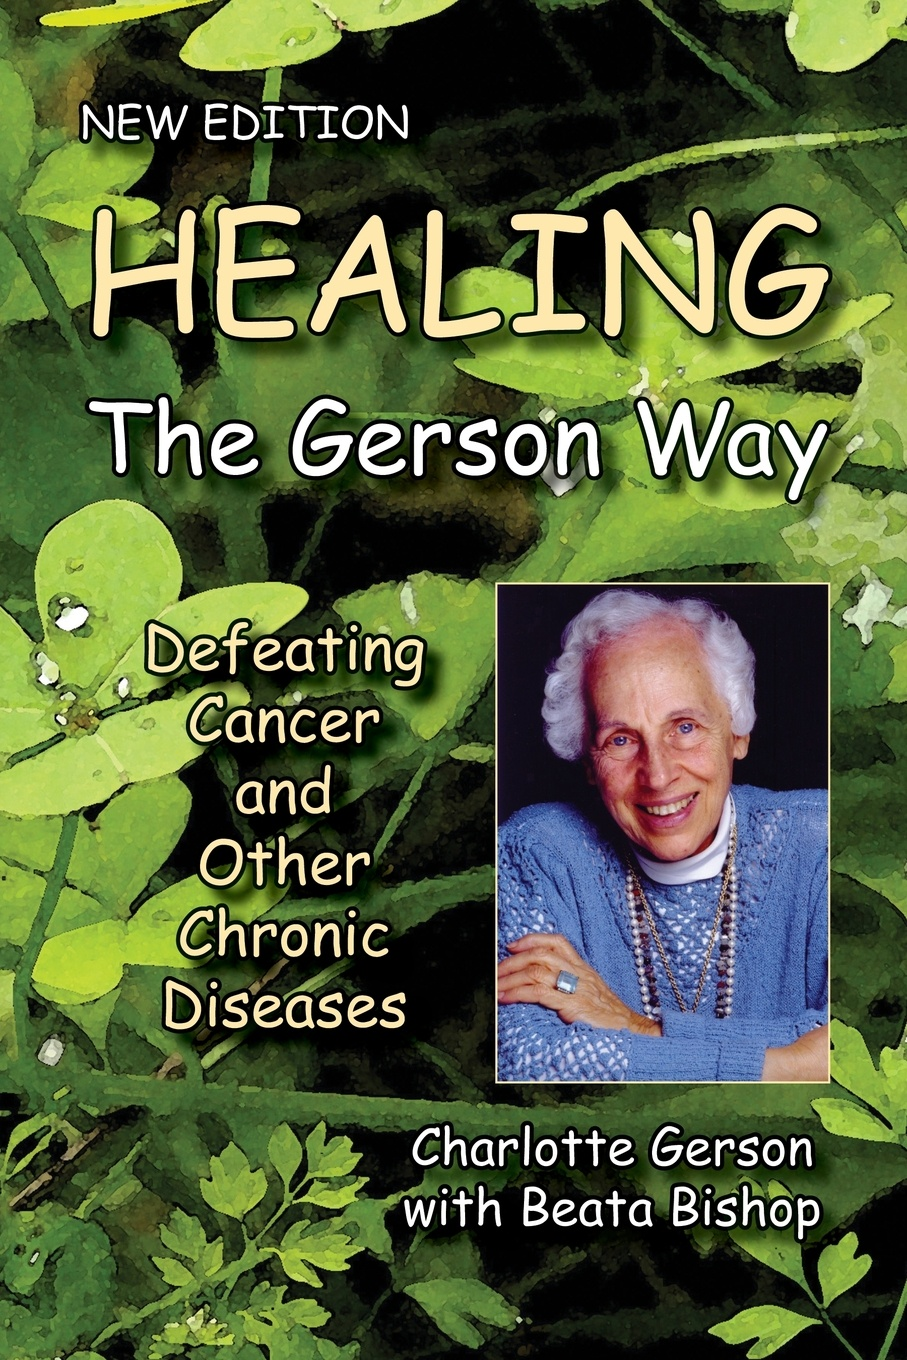 Charlotte Gerson, Beata Bishop Healing the Gerson Way. Defeating Cancer and Other Chronic Diseases